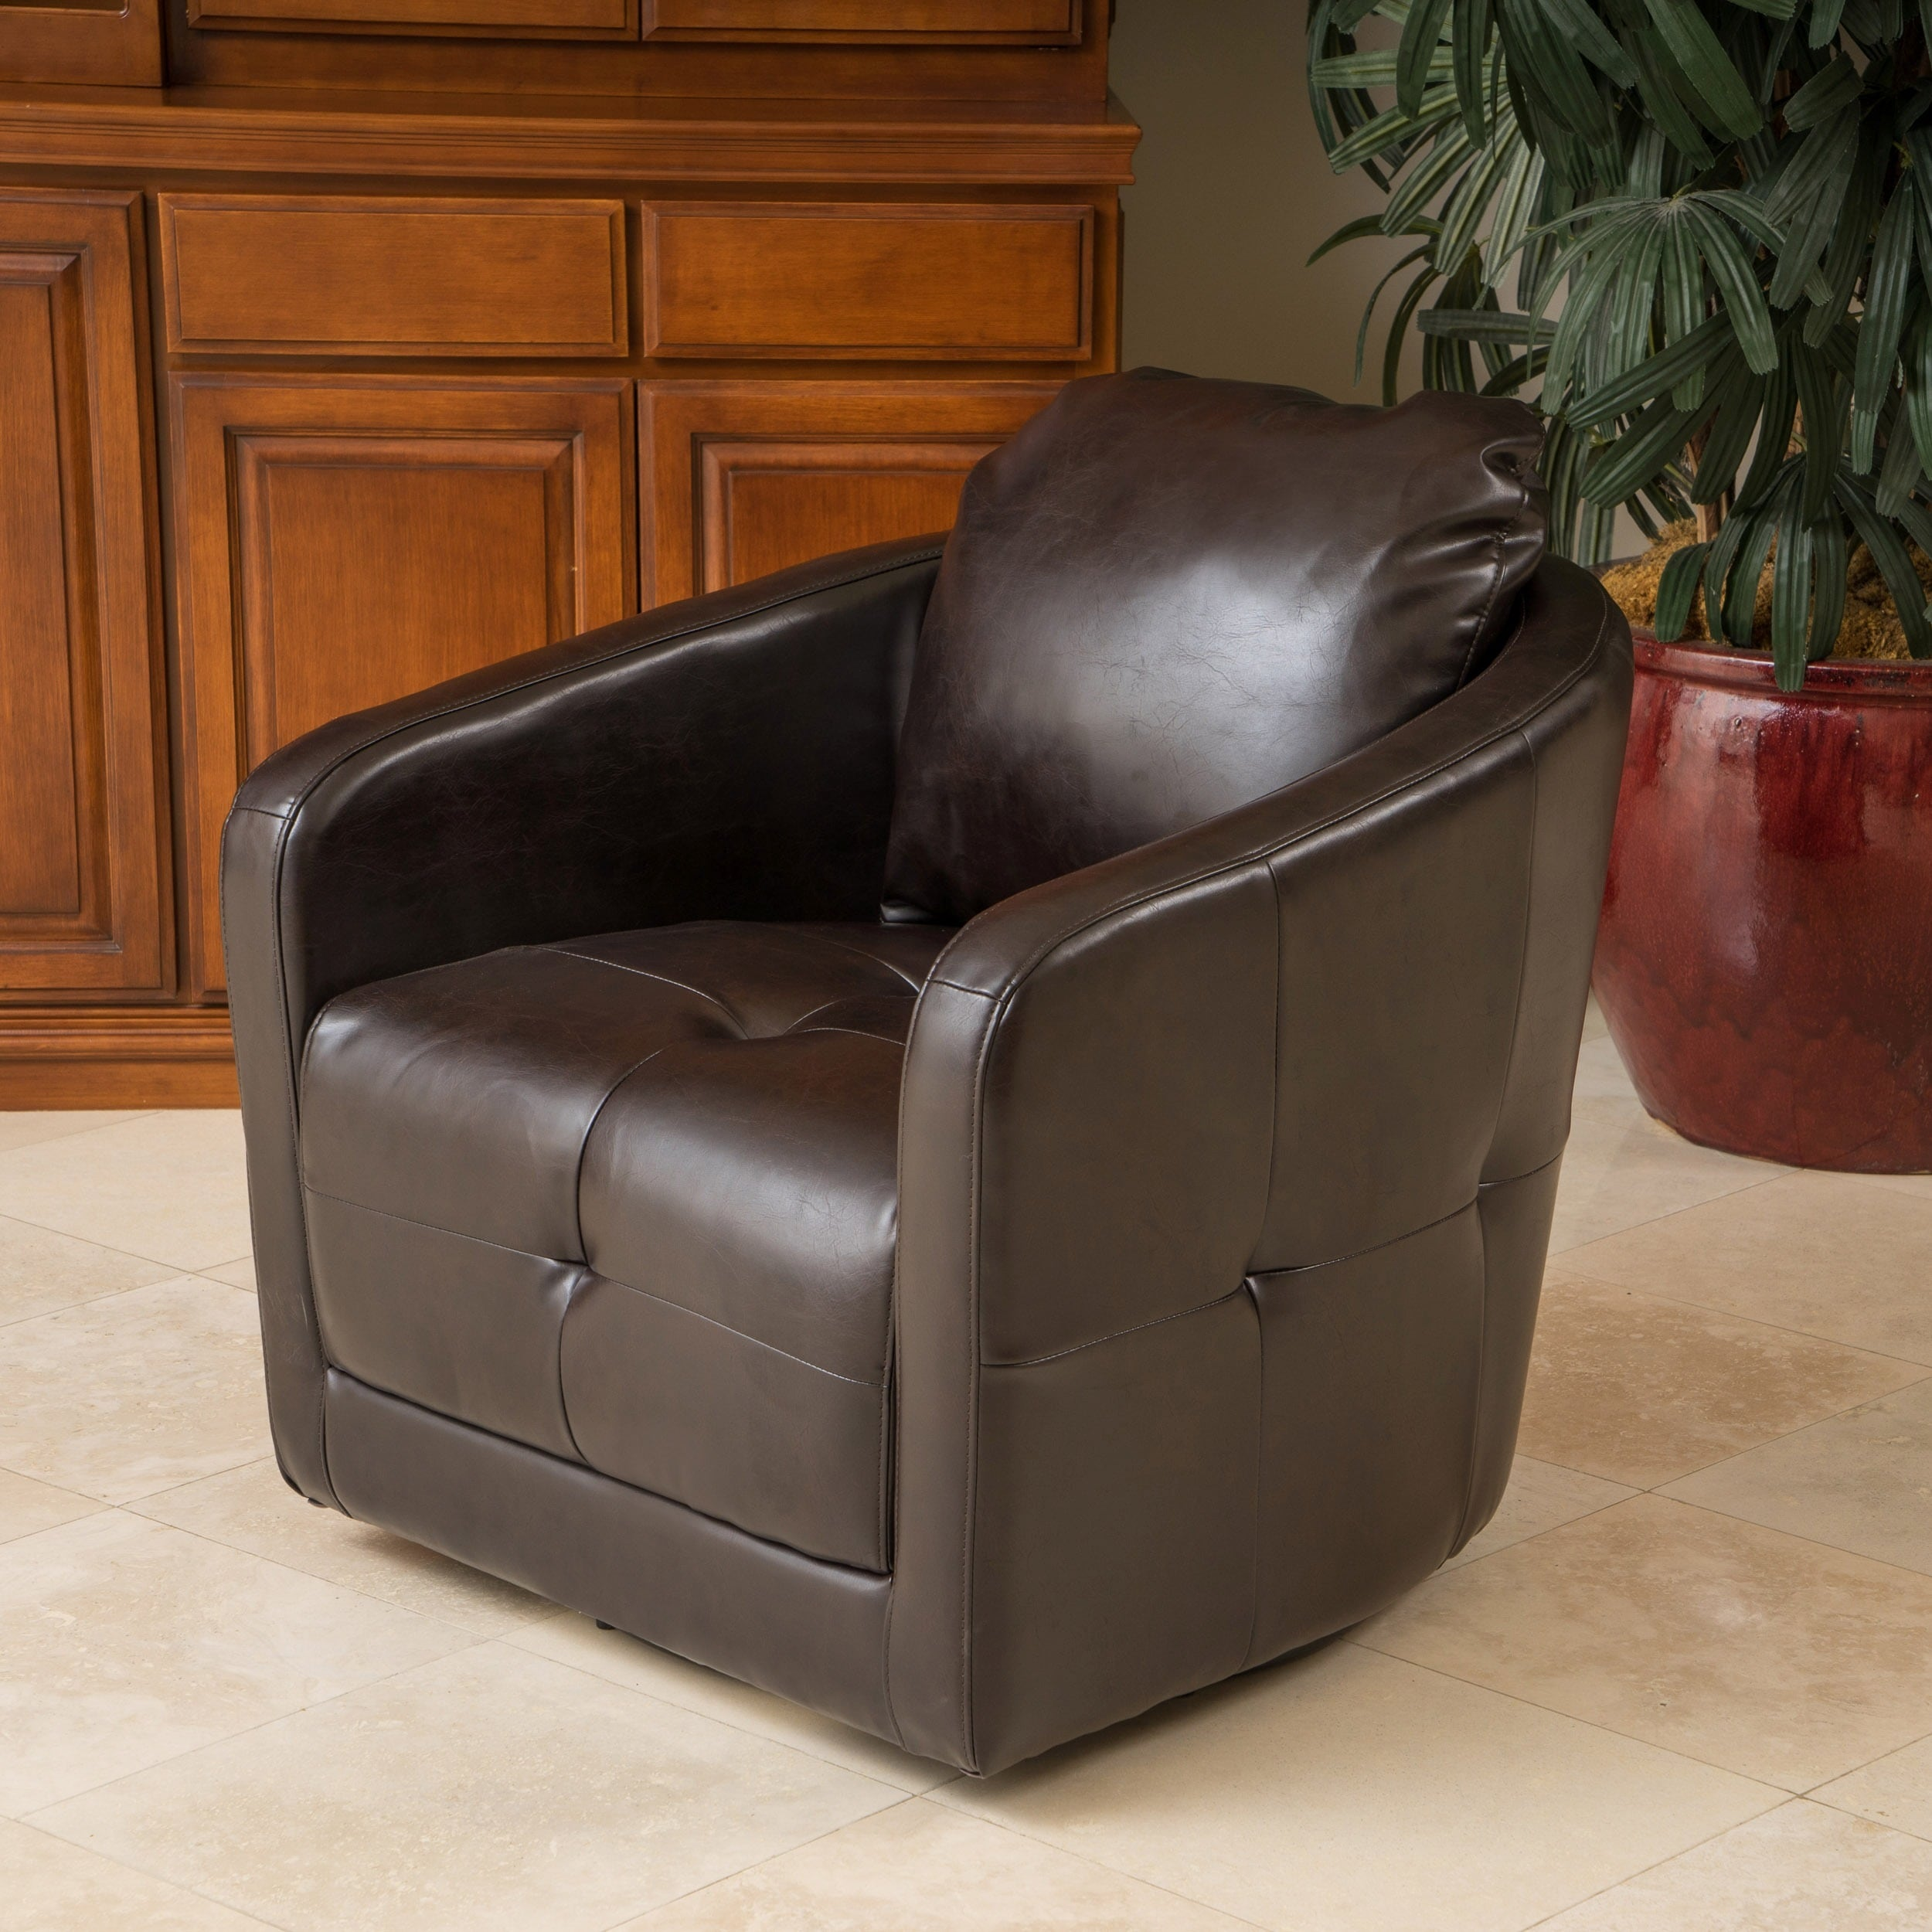 Concordia Leather Swivel Chair By Christopher Knight Home   Free Shipping  Today   Overstock.com   16385171